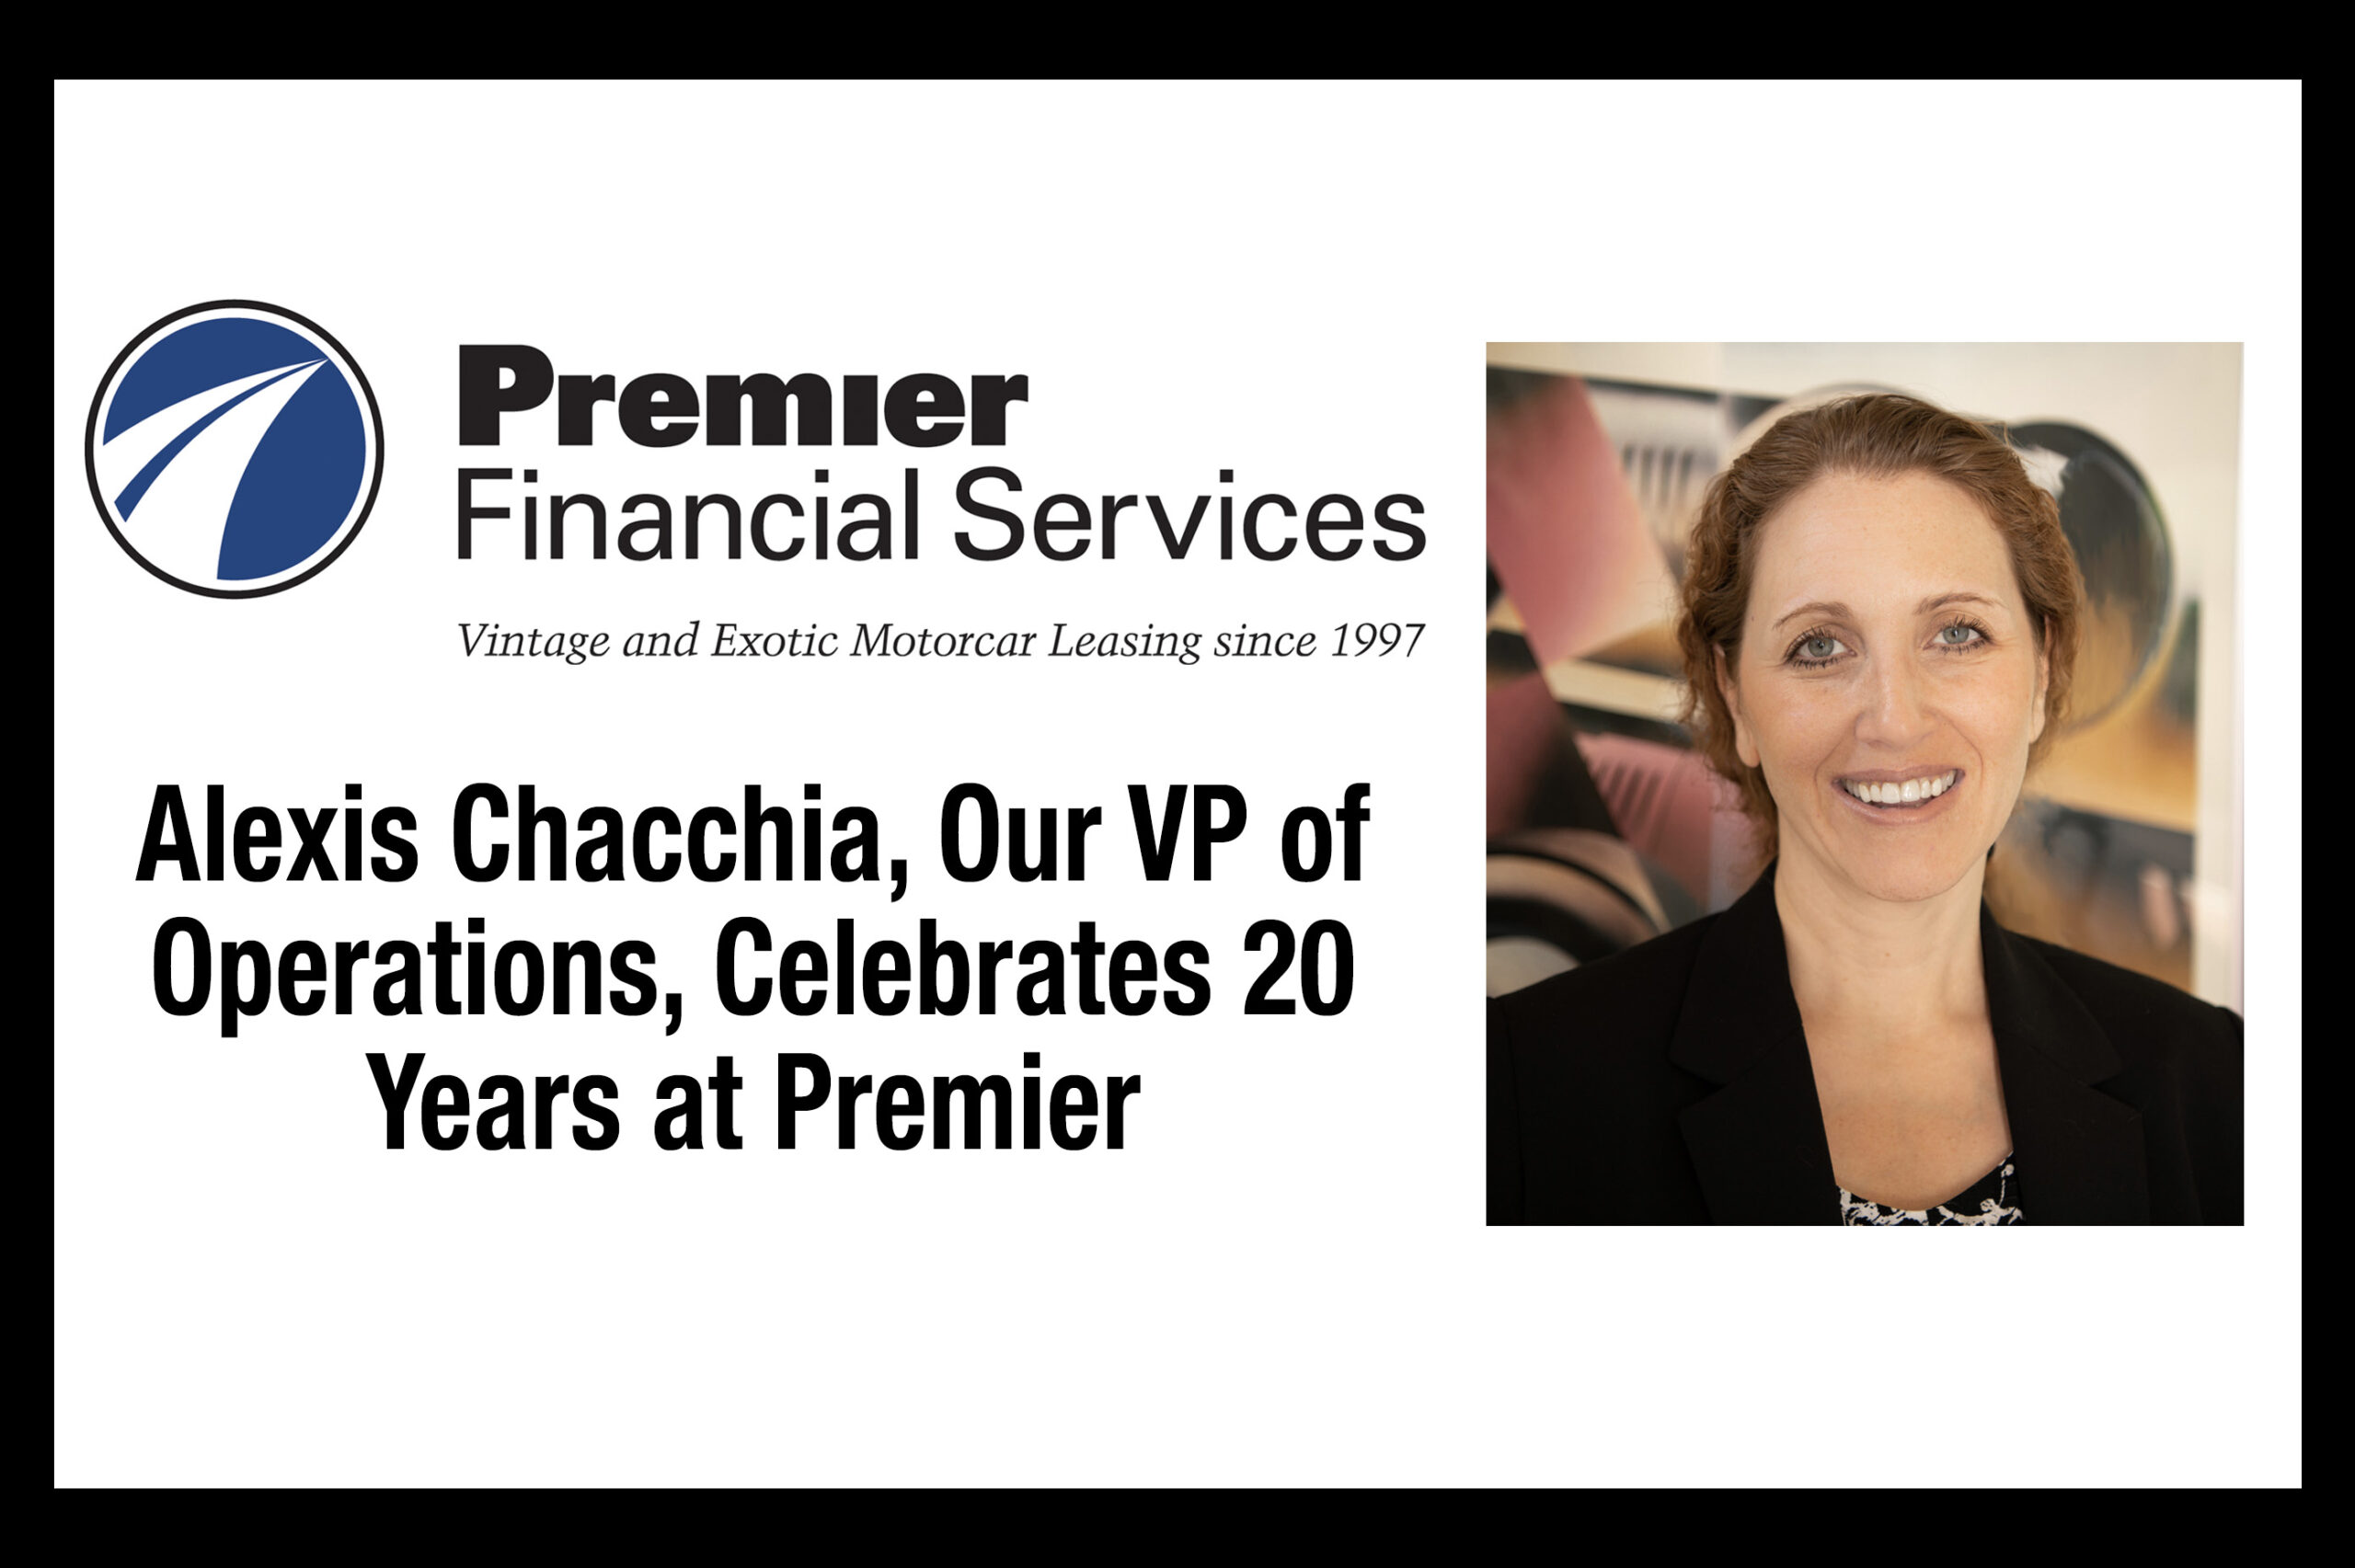 Alexis Chacchia, VP of Operations Celebrates 20 Years at Premier Financial Services!